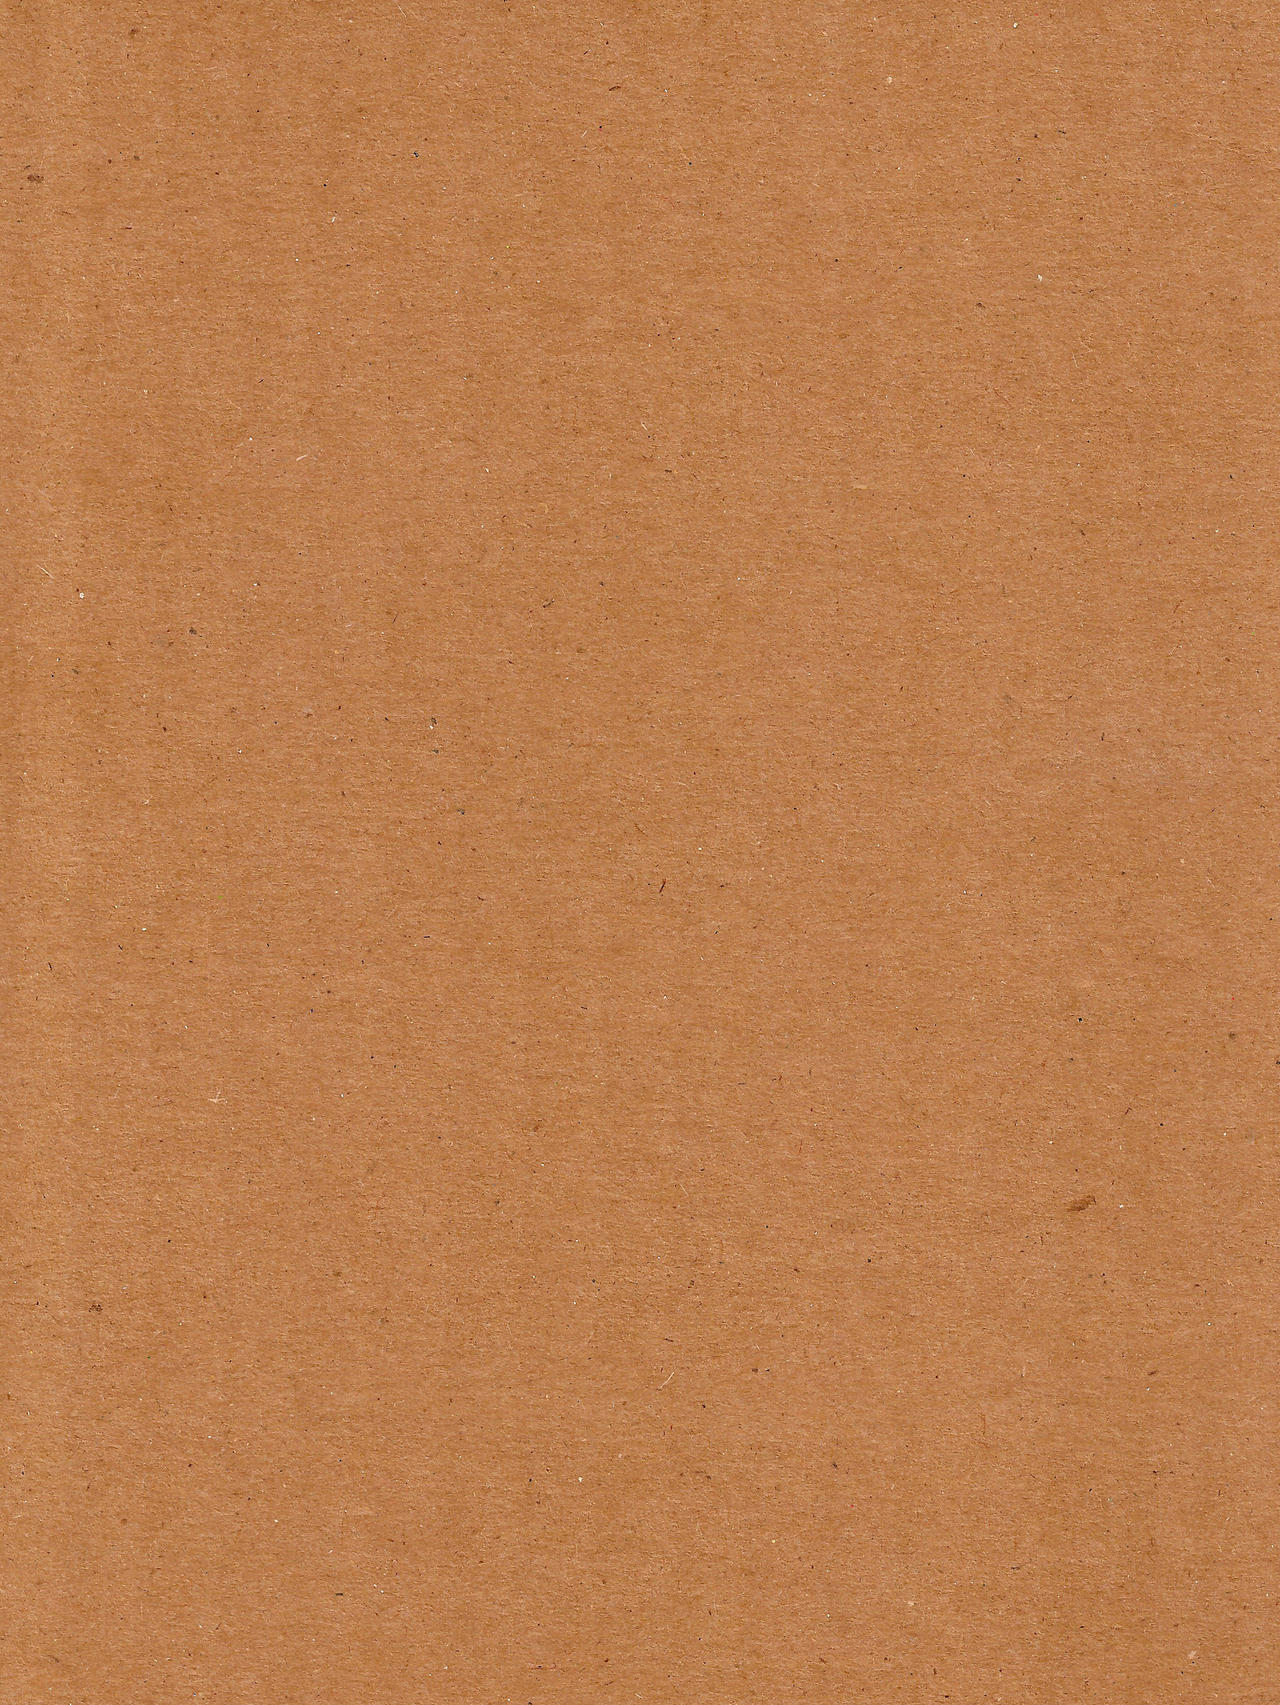 Fabulous Cardboard Brown Paper Texture by Enchantedgal-Stock on DeviantArt GO61